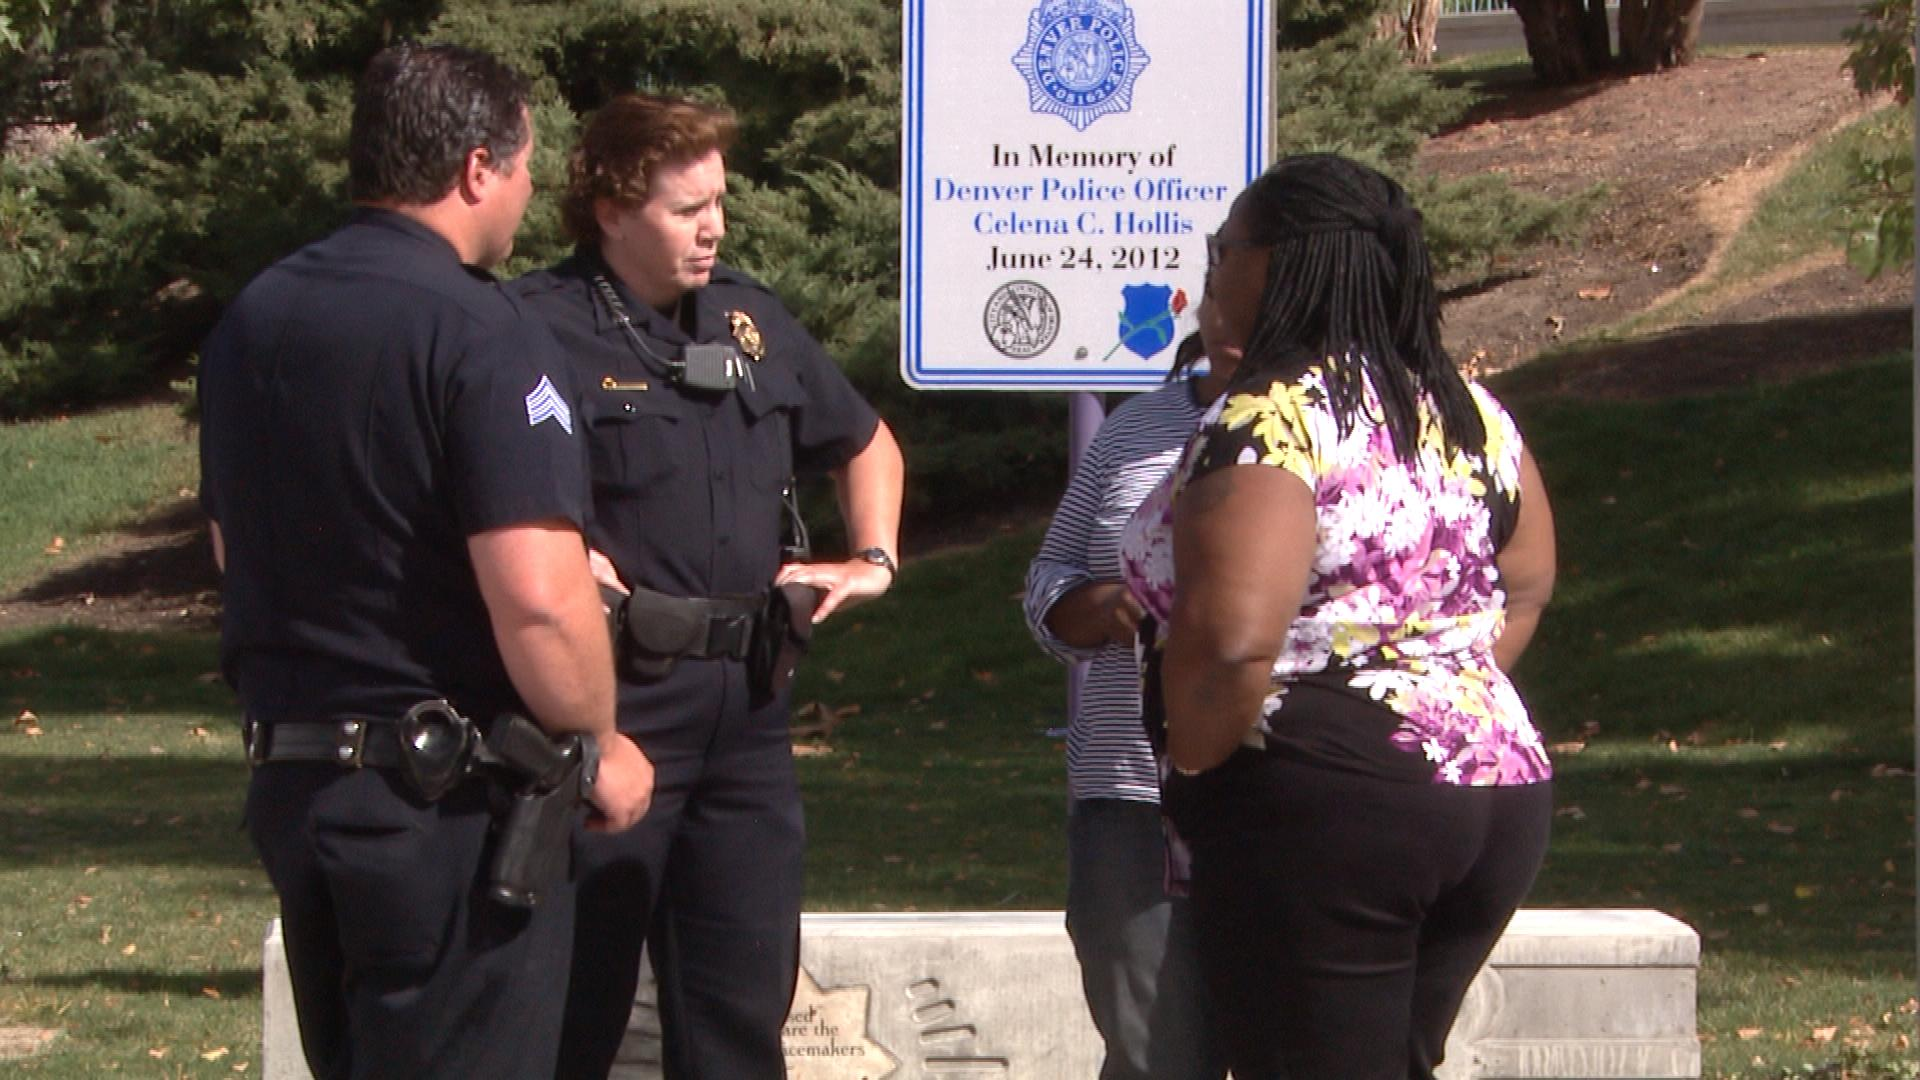 Celena Hollis' mother and sister talk with police officers at the defaced memorial (credit: CBS)